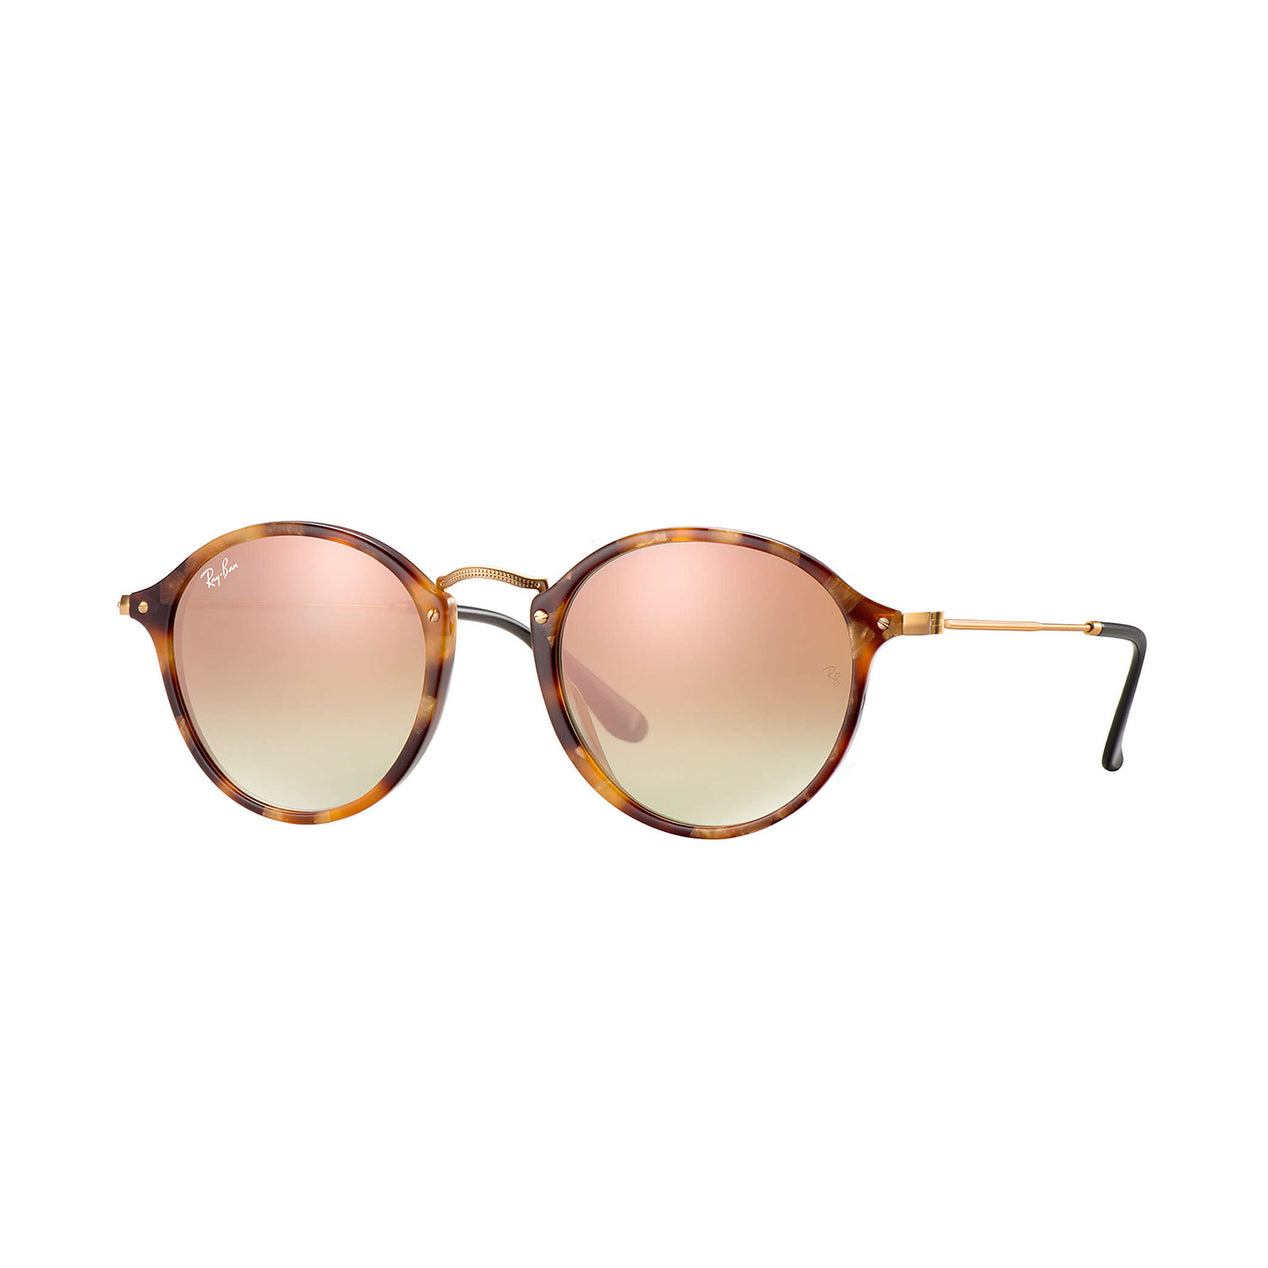 bd426ad3eb Ray-Ban Round Fleck Sunglasses - Tortoise Black Frame - Copper Gradient  Flash Lens